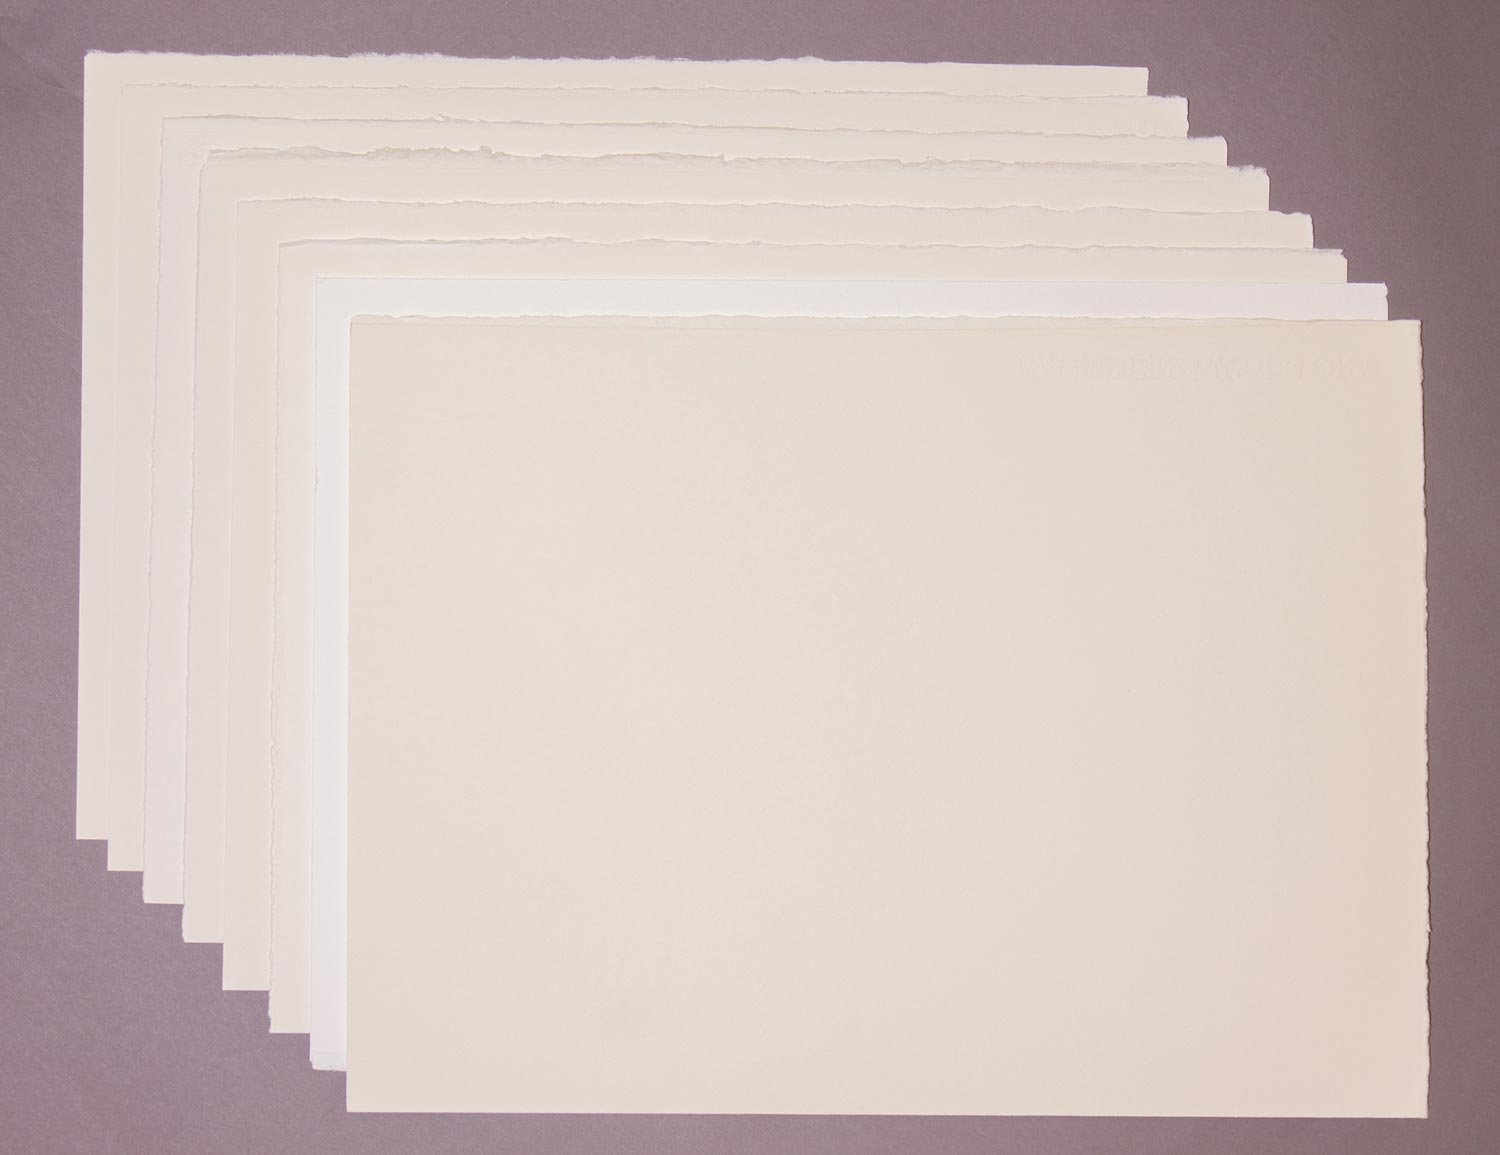 Saunders Waterford Watercolour paper Trial Pack, 8 Sheets Teaching Art